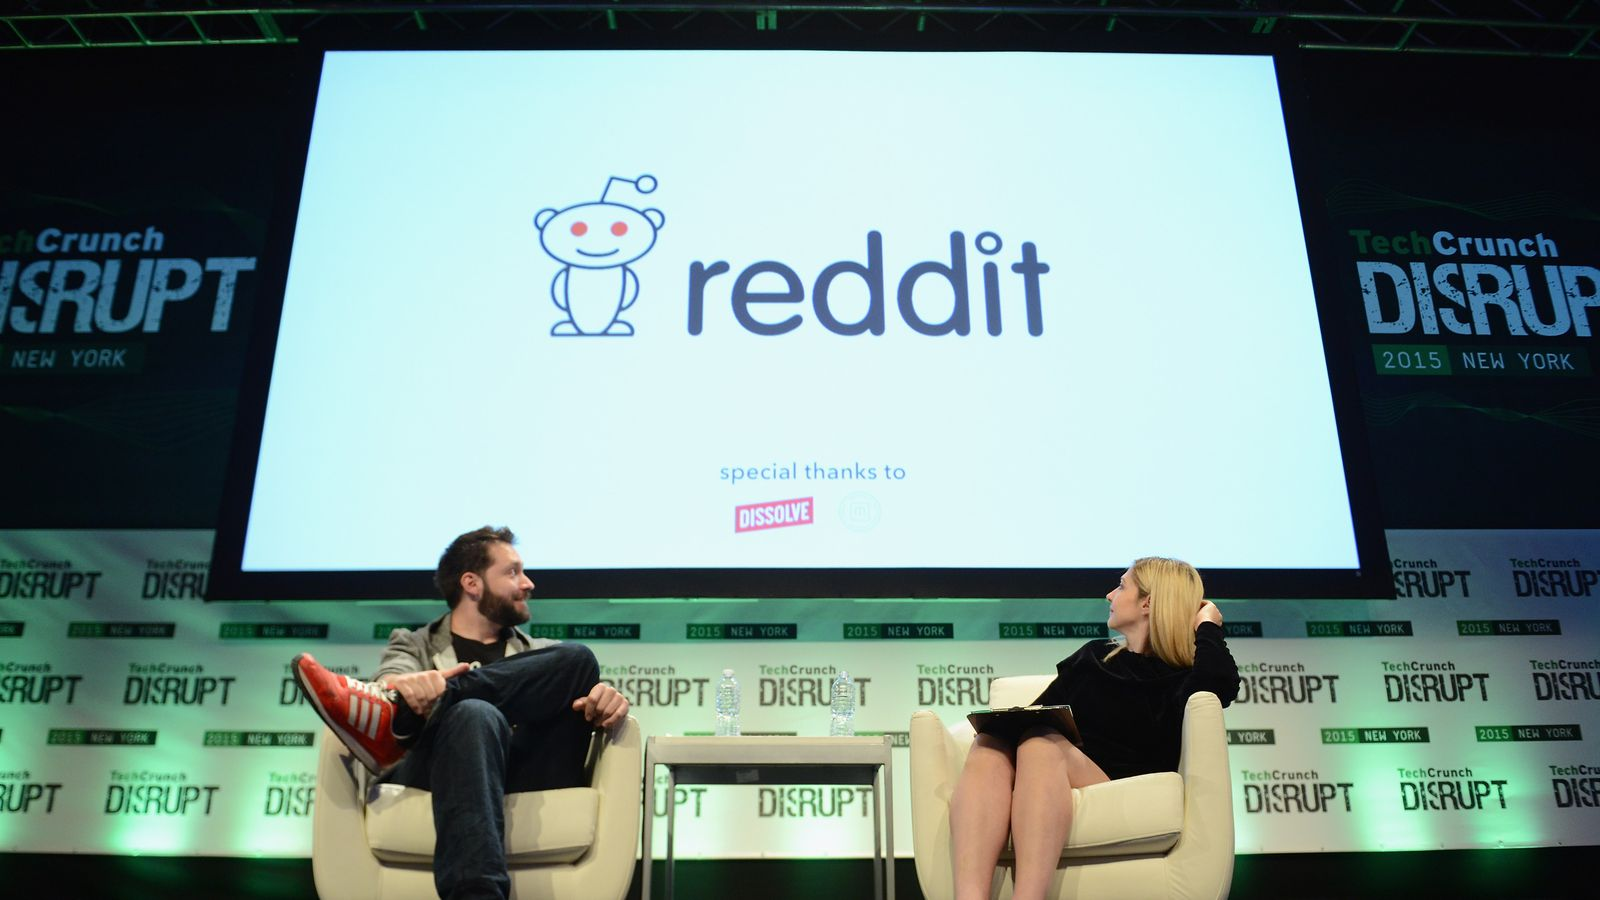 Reddit is shaking up management in its latest ...